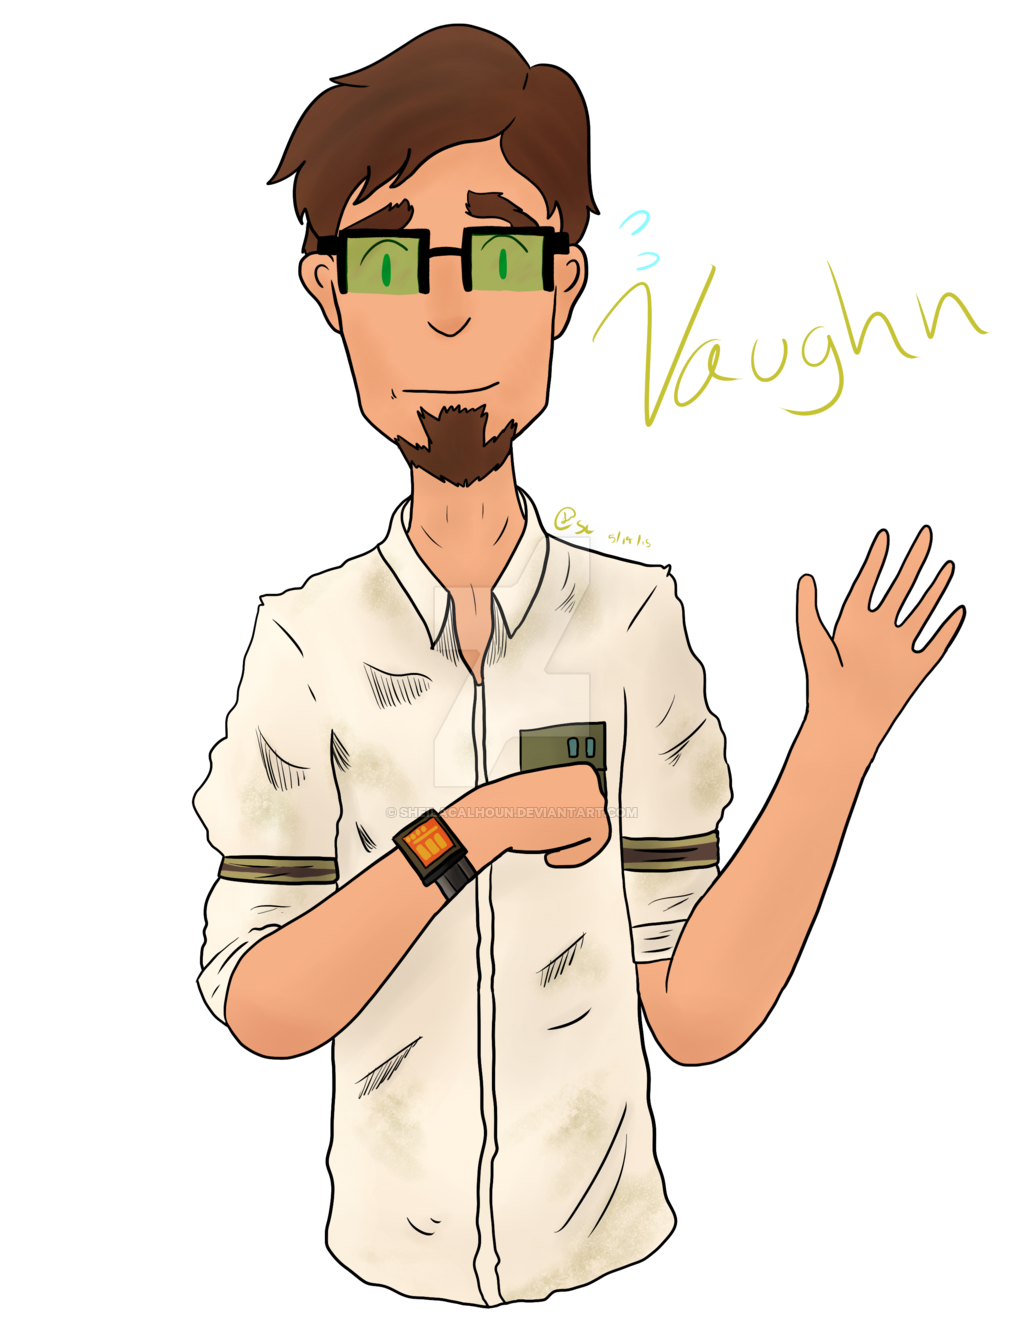 B drawing vaughn. By sheilacalhoun on deviantart